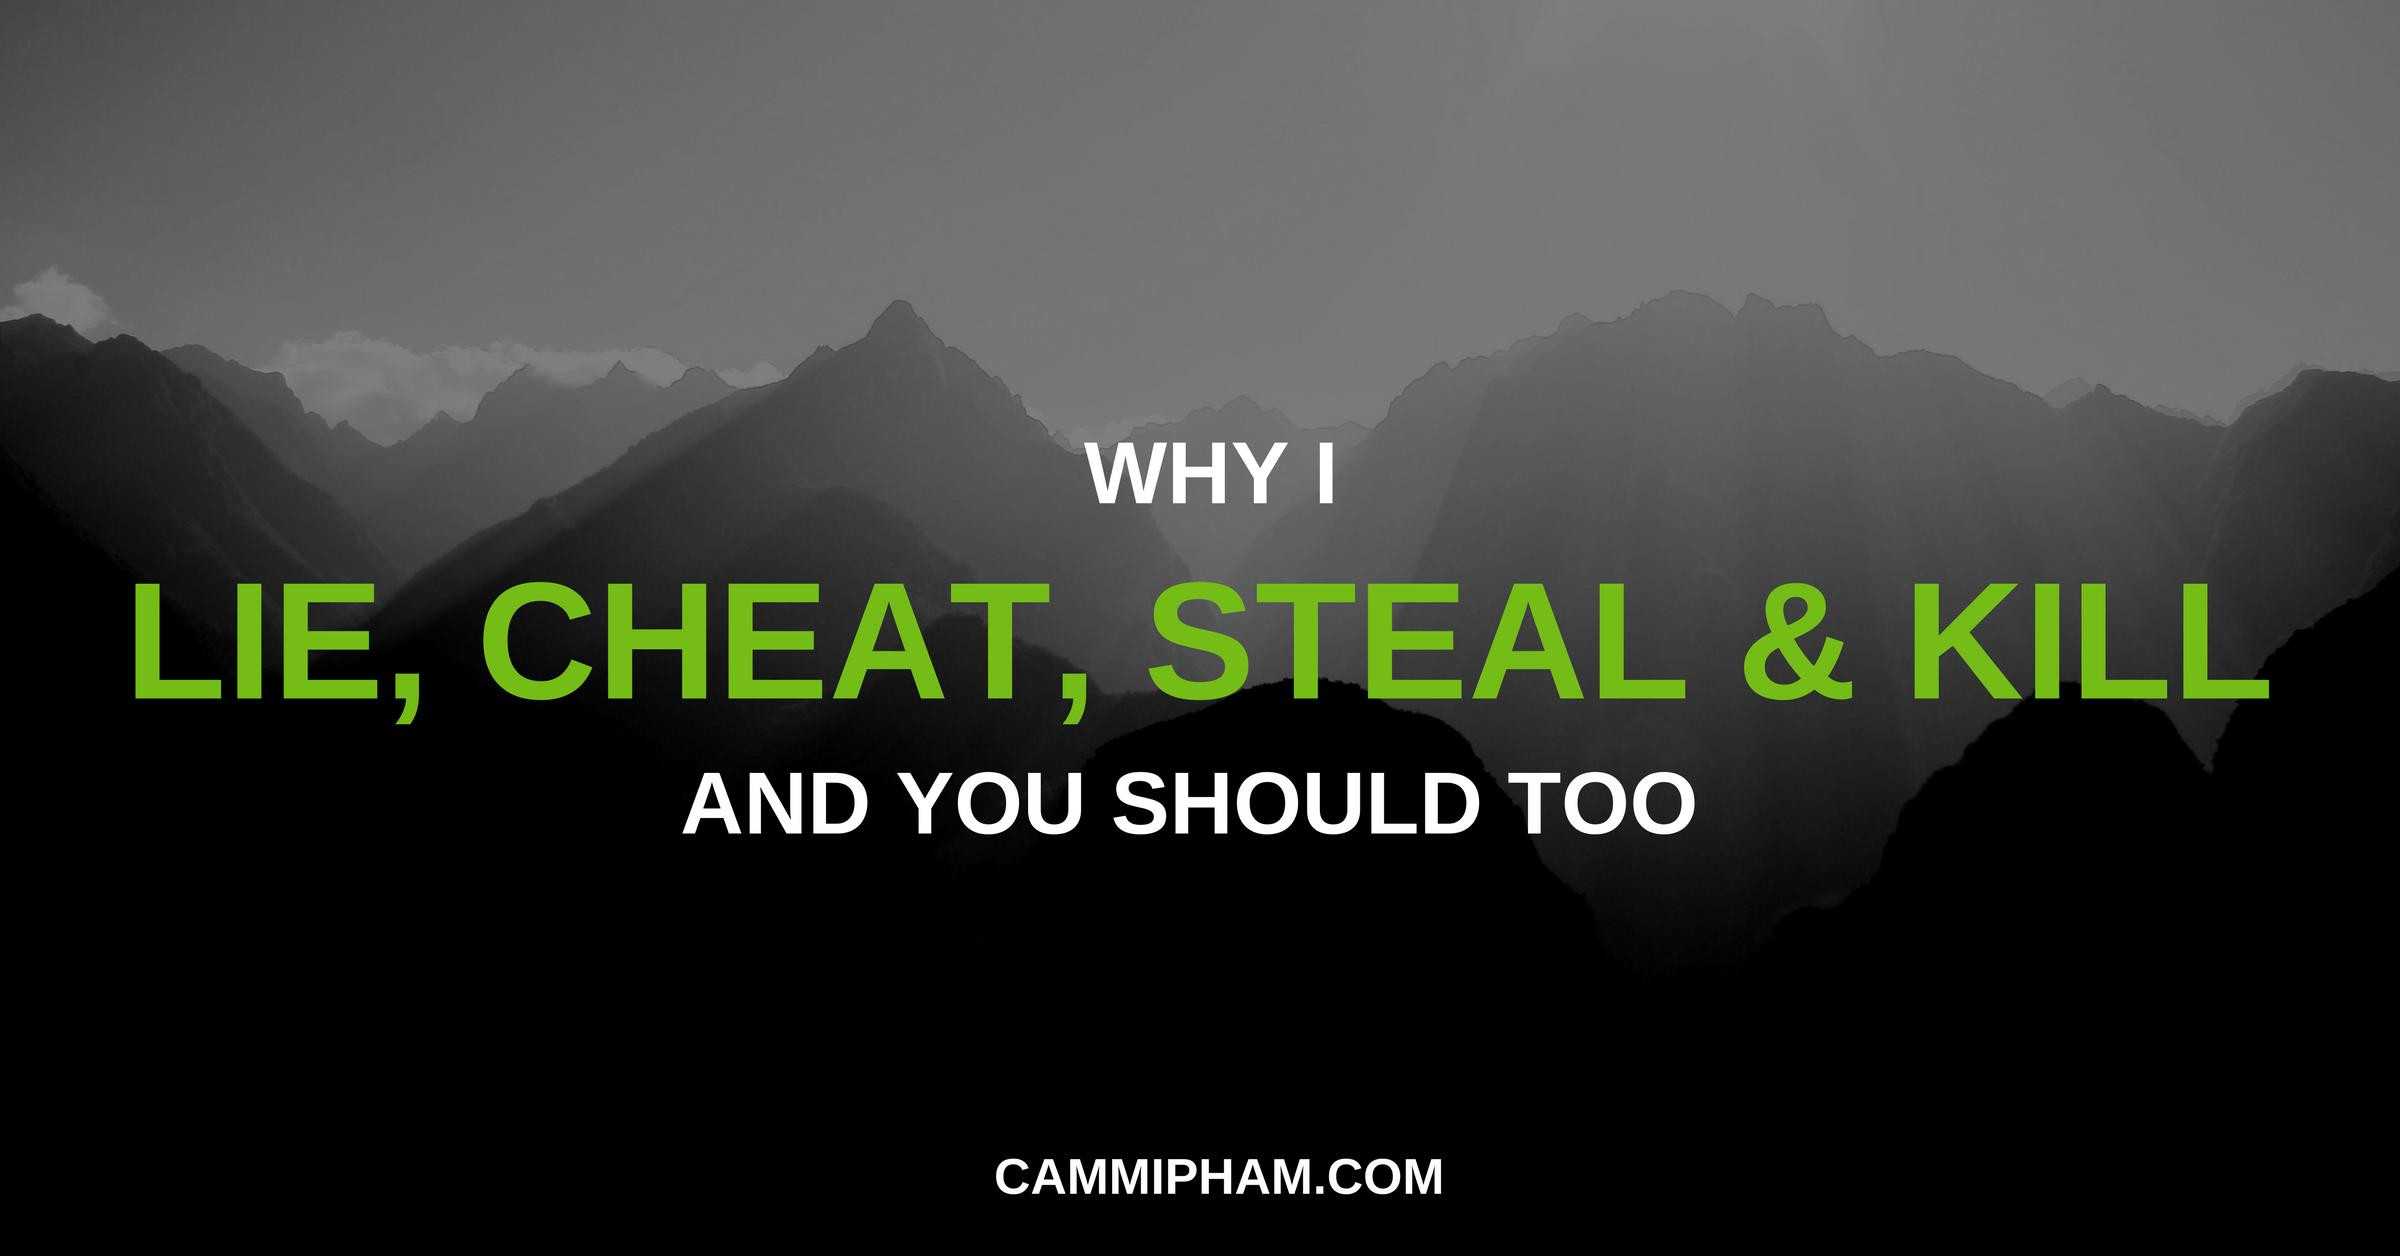 Why I Lie, Cheat, Steal And Kill, And You Should Too